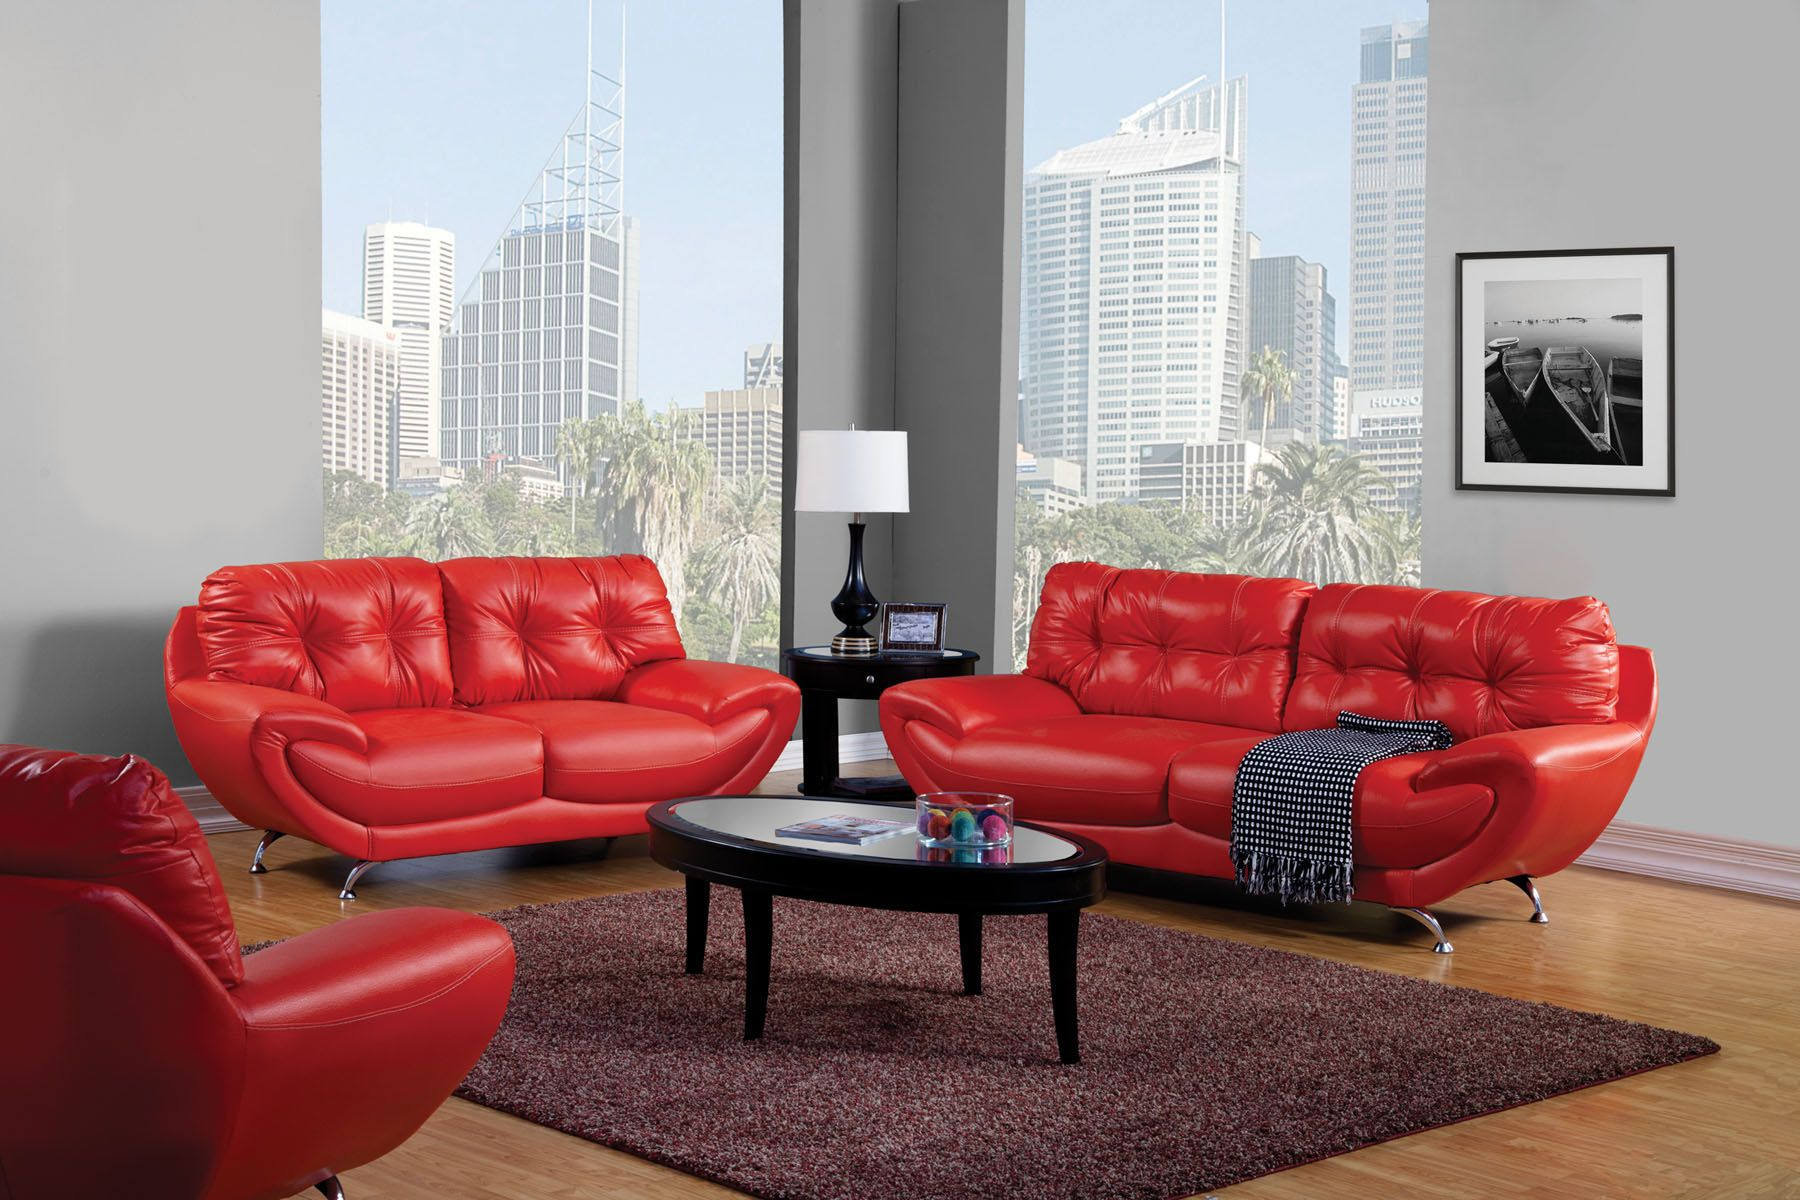 Living Room Furnishings And Design Glamorous Red And Black Leather Living Room Furniture  Leather Living Rooms 2018